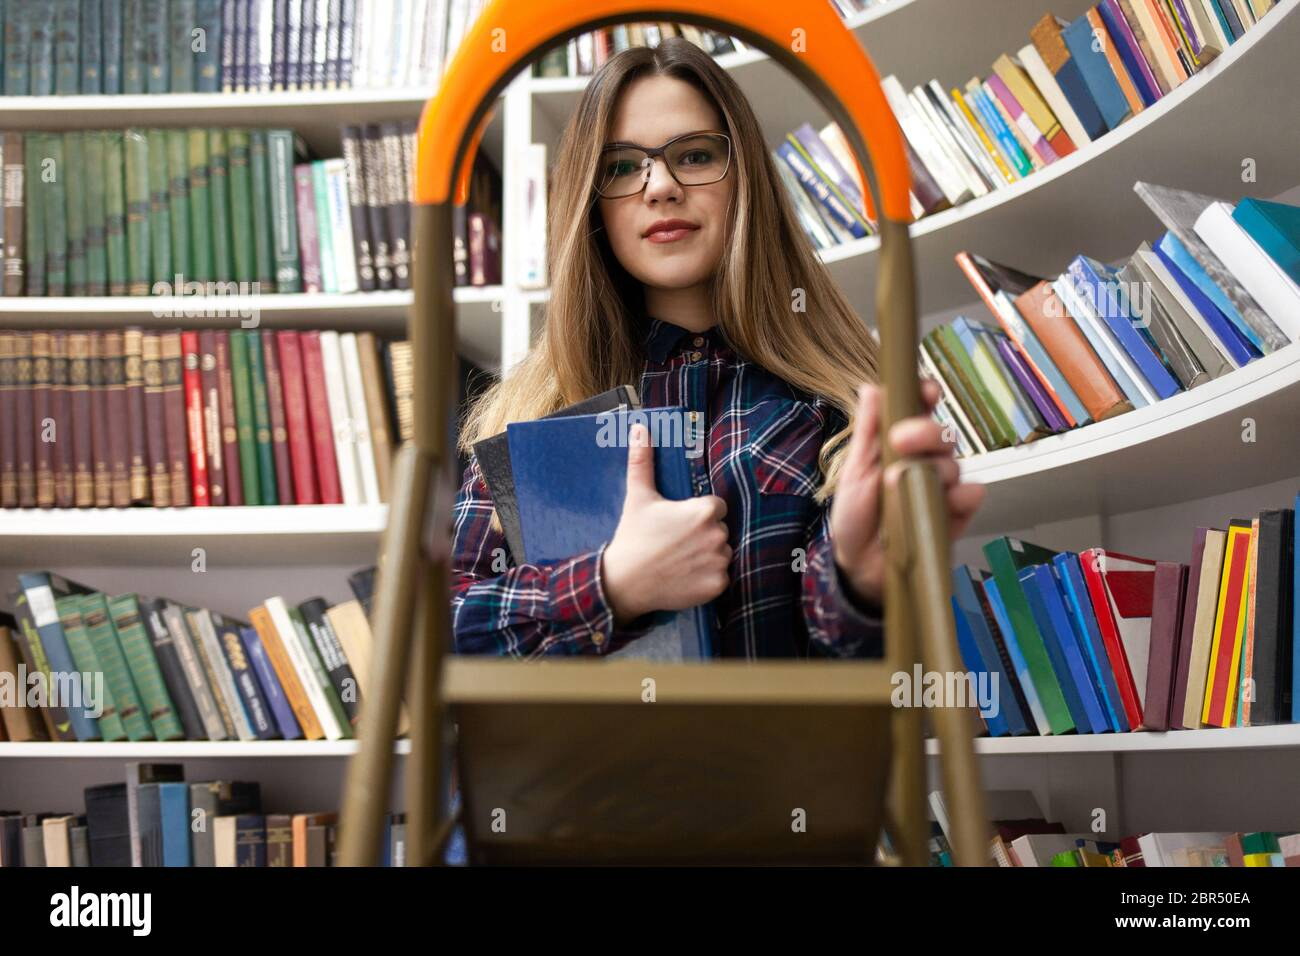 Pretty student lady stands on a stepladder in a library holding a book in her hand. Woman in public library Stock Photo